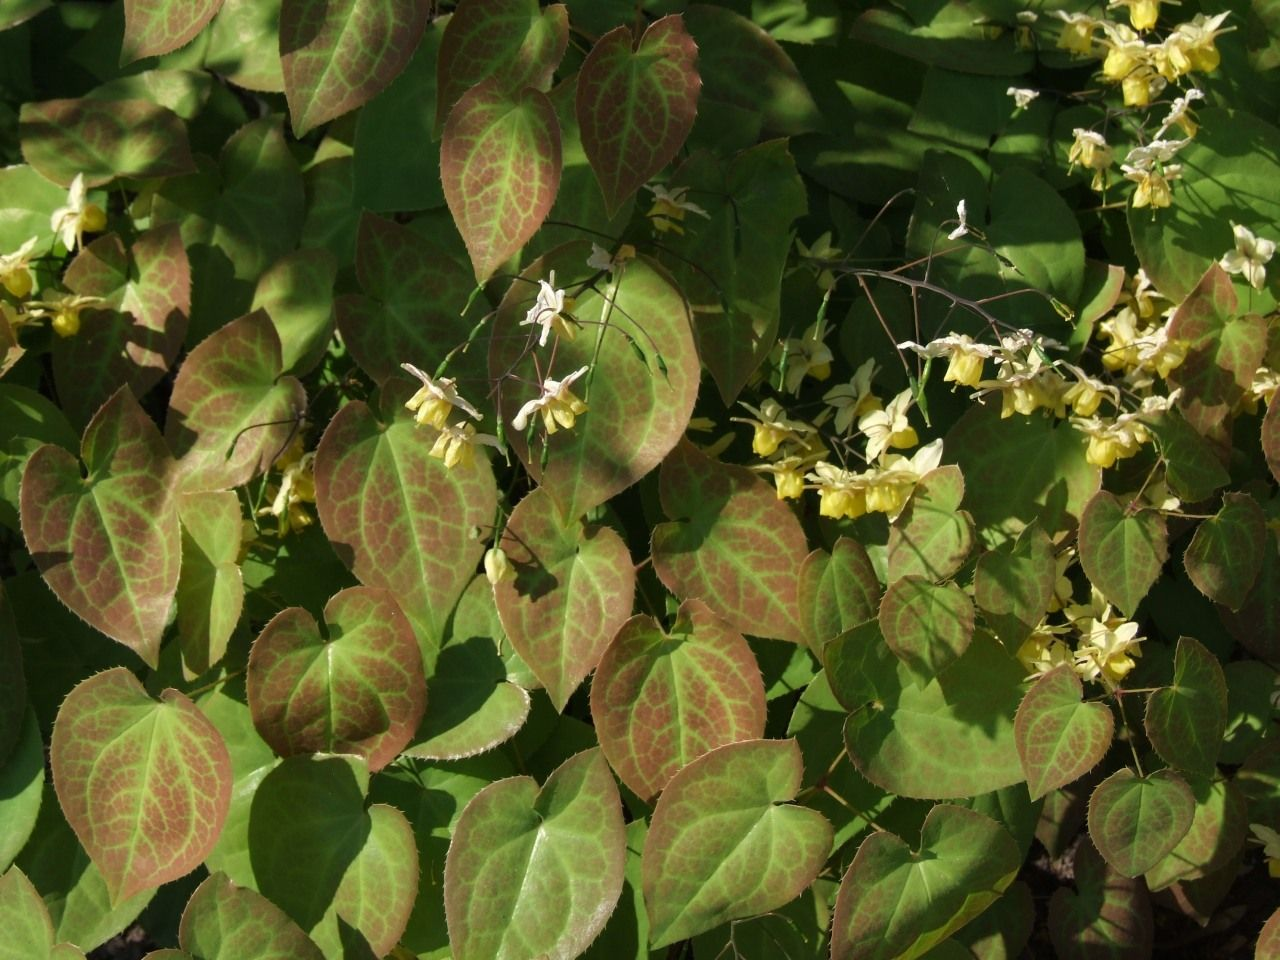 Epimedium Interesting Ground Cover With Heart Shaped Leaves And Small Yellow Flowers In Early Spring